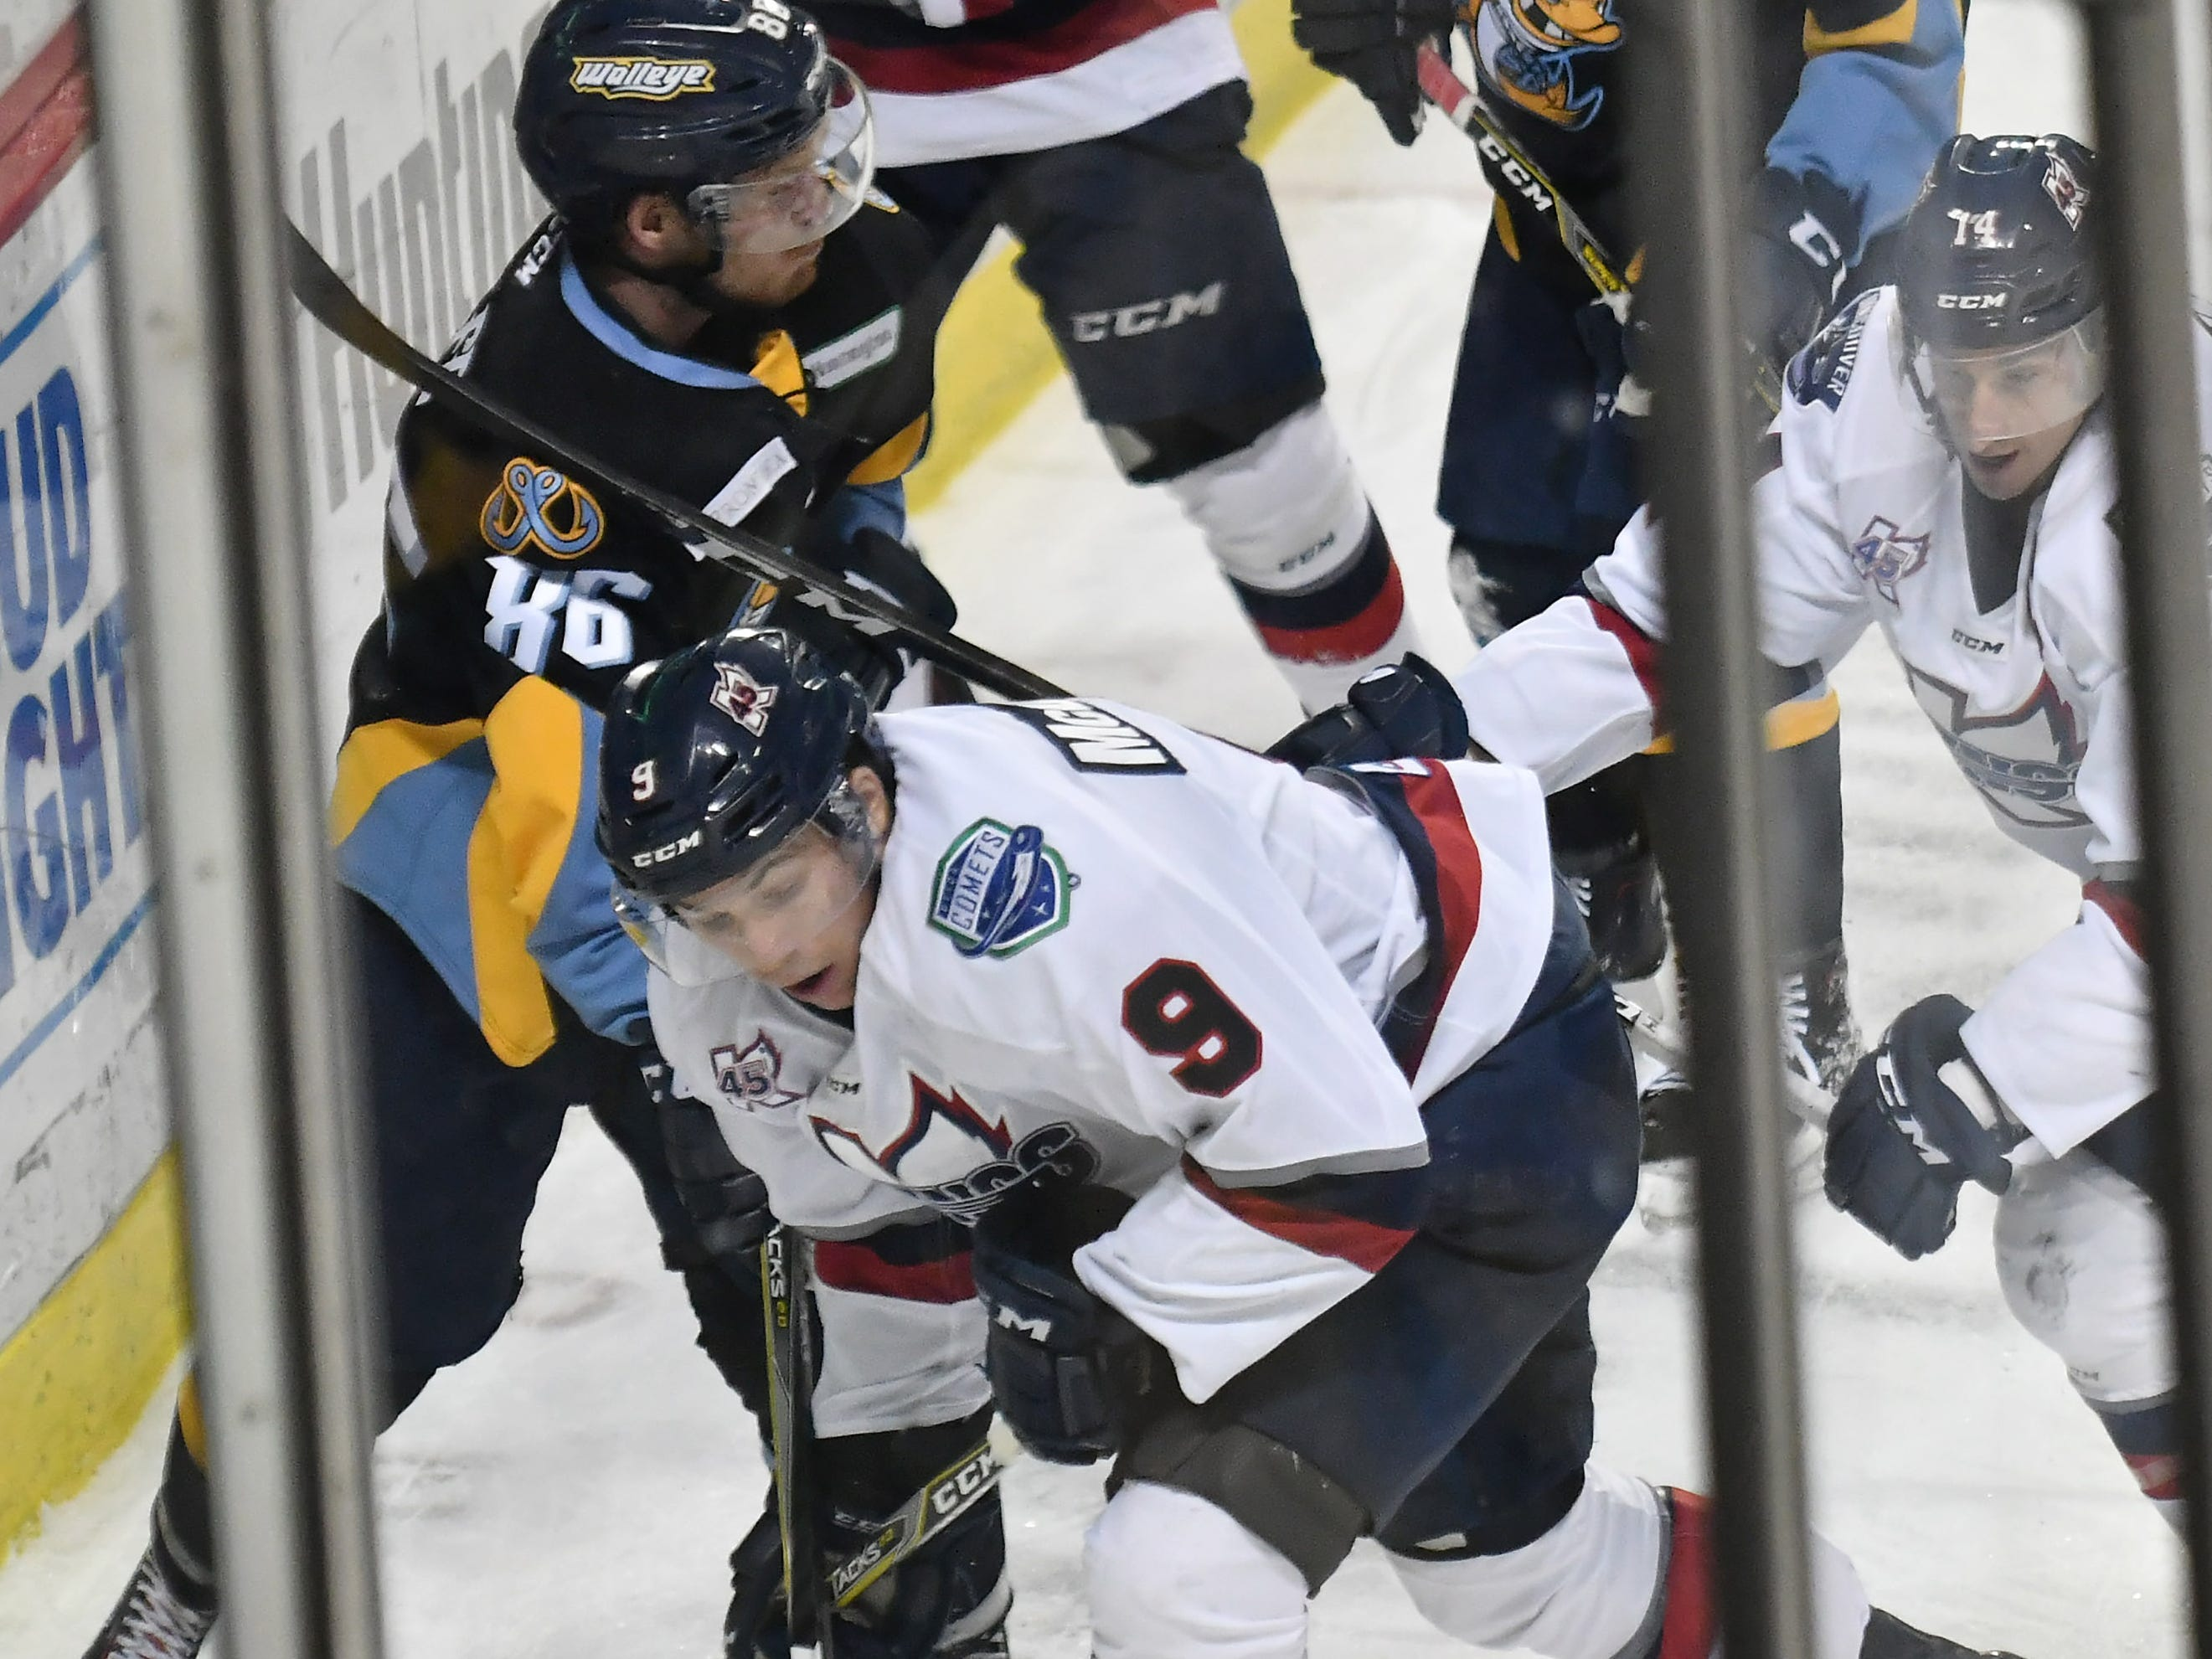 Toledo's Greg Wolfe (86) battles Kalamazoo's Chad McDonald for the puck in the second period.